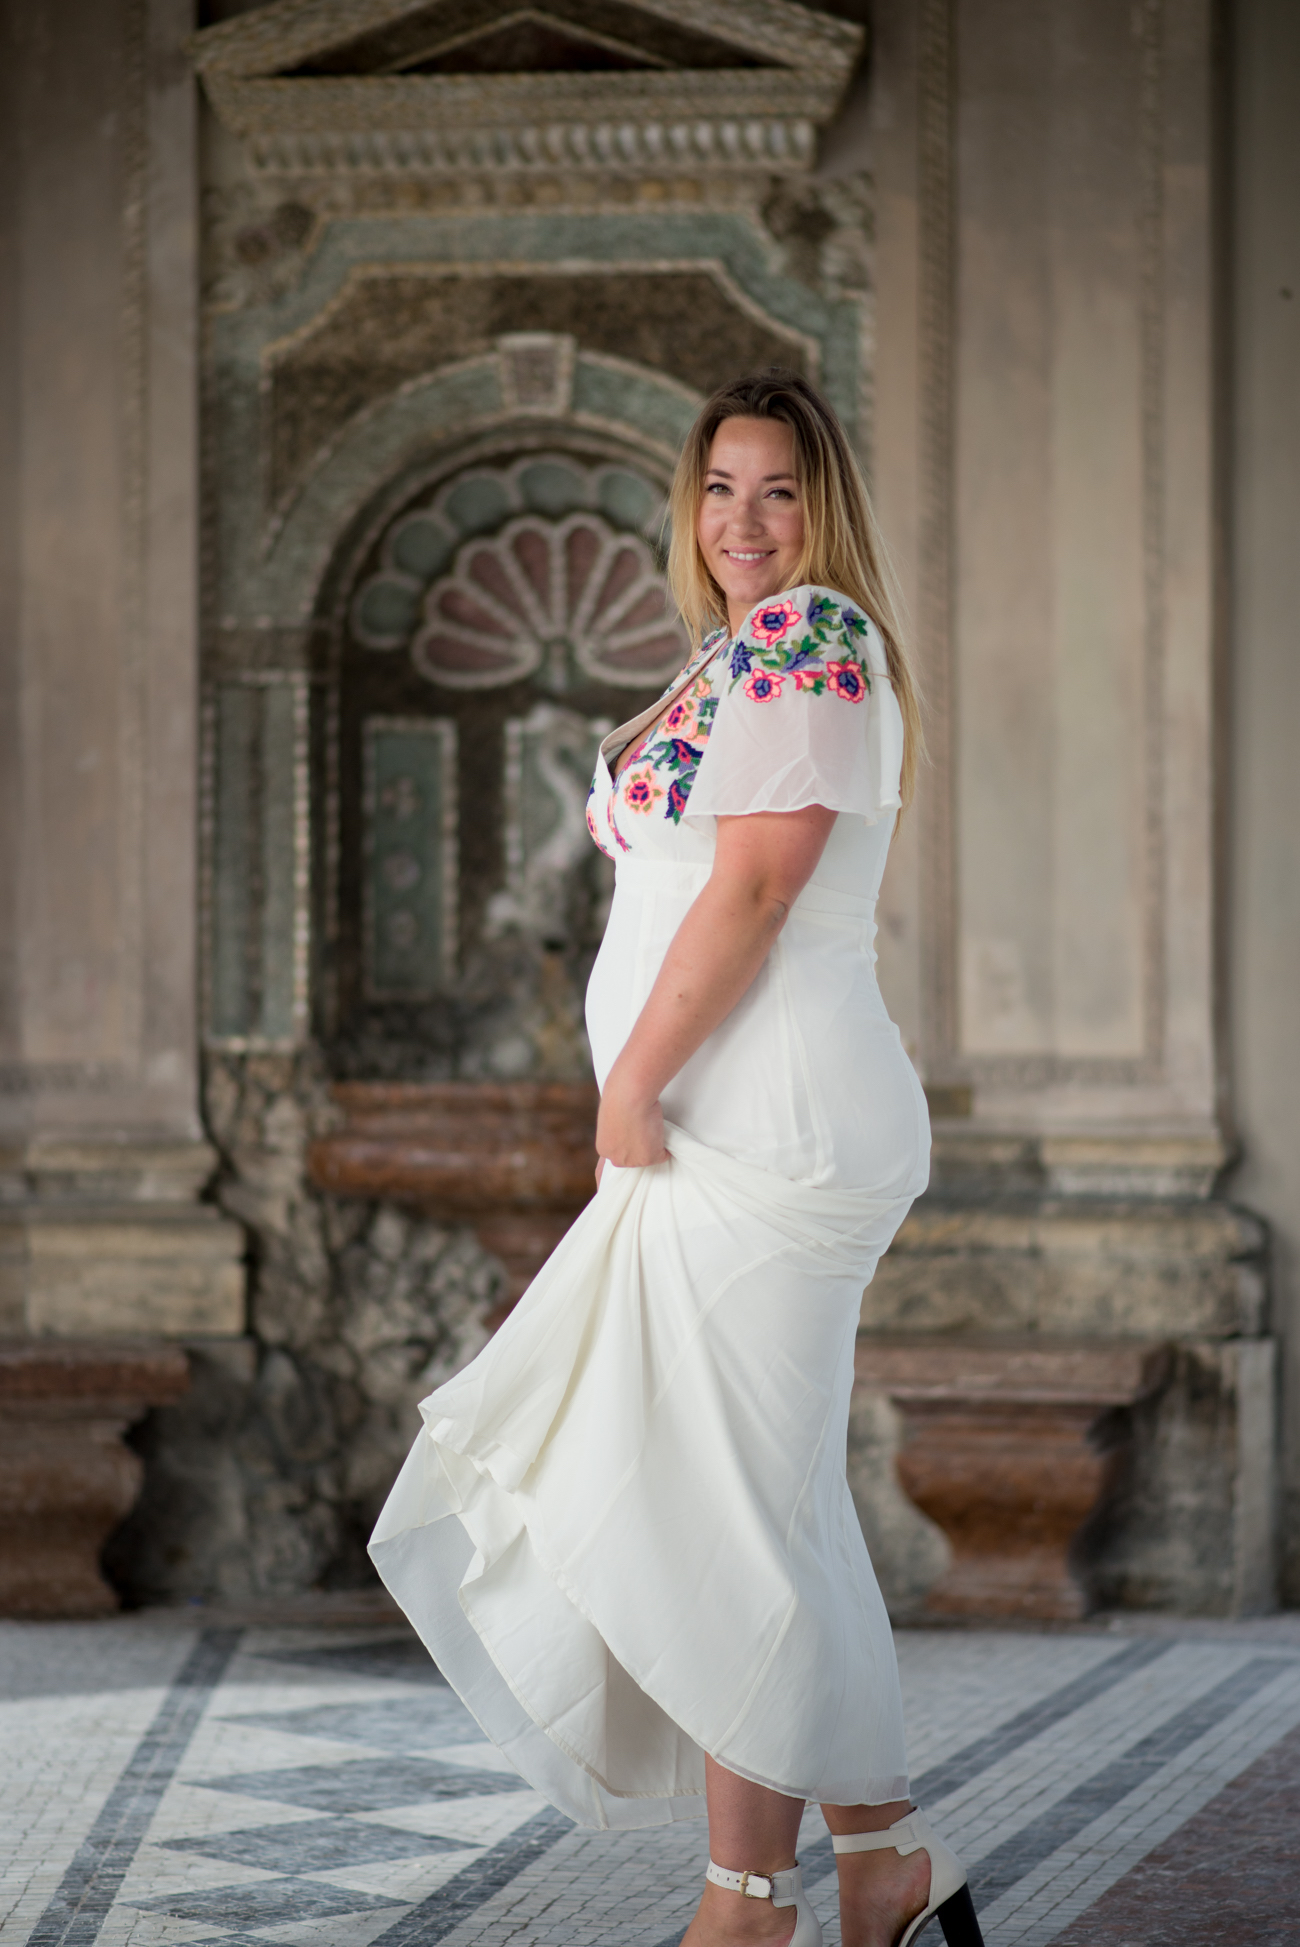 The Skinny and the Curvy One_Fashion_blogger_Plussize_Soulfully_Summerball_Asos_Asos Curve_Plus Size Blogger_Plus Size Münche_Fashionblogger München (8 von 20)